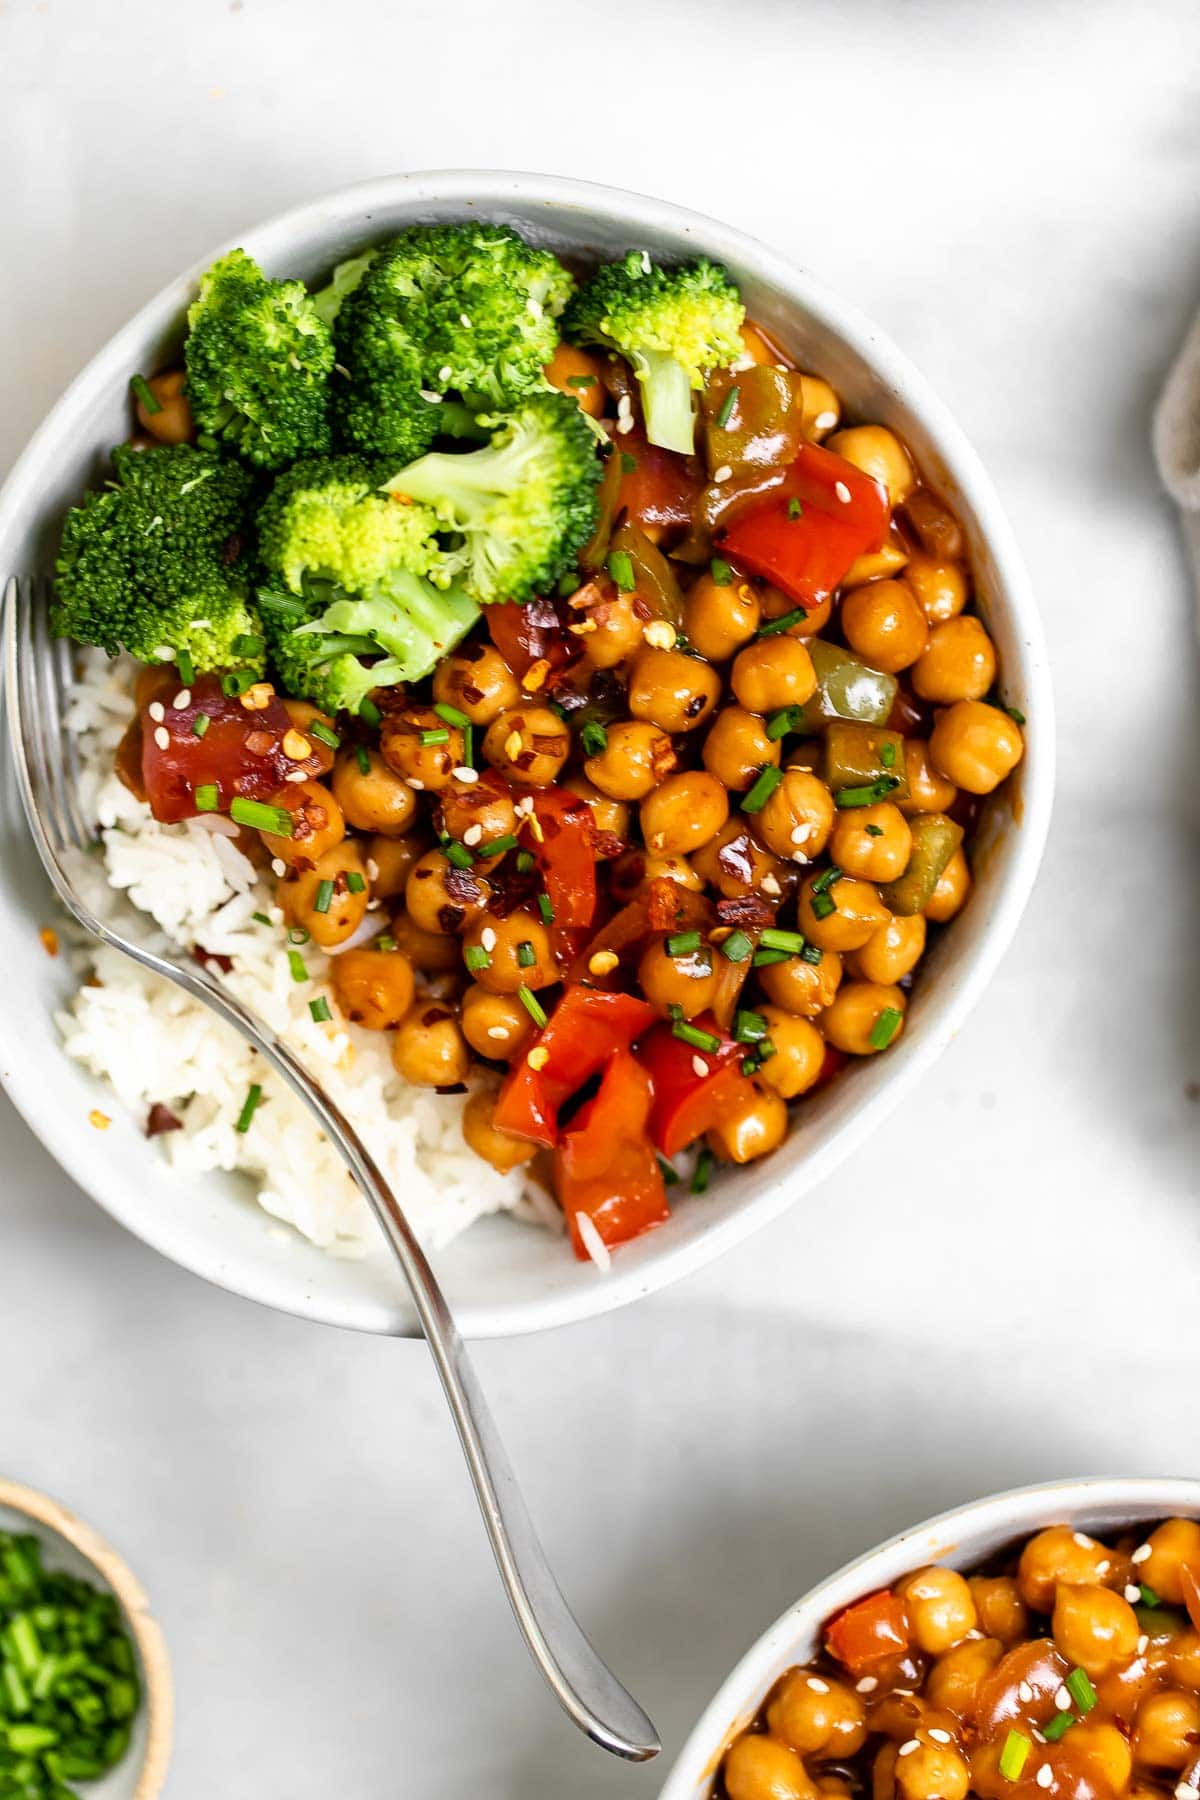 Chickpea stir fry with a fork on the side.